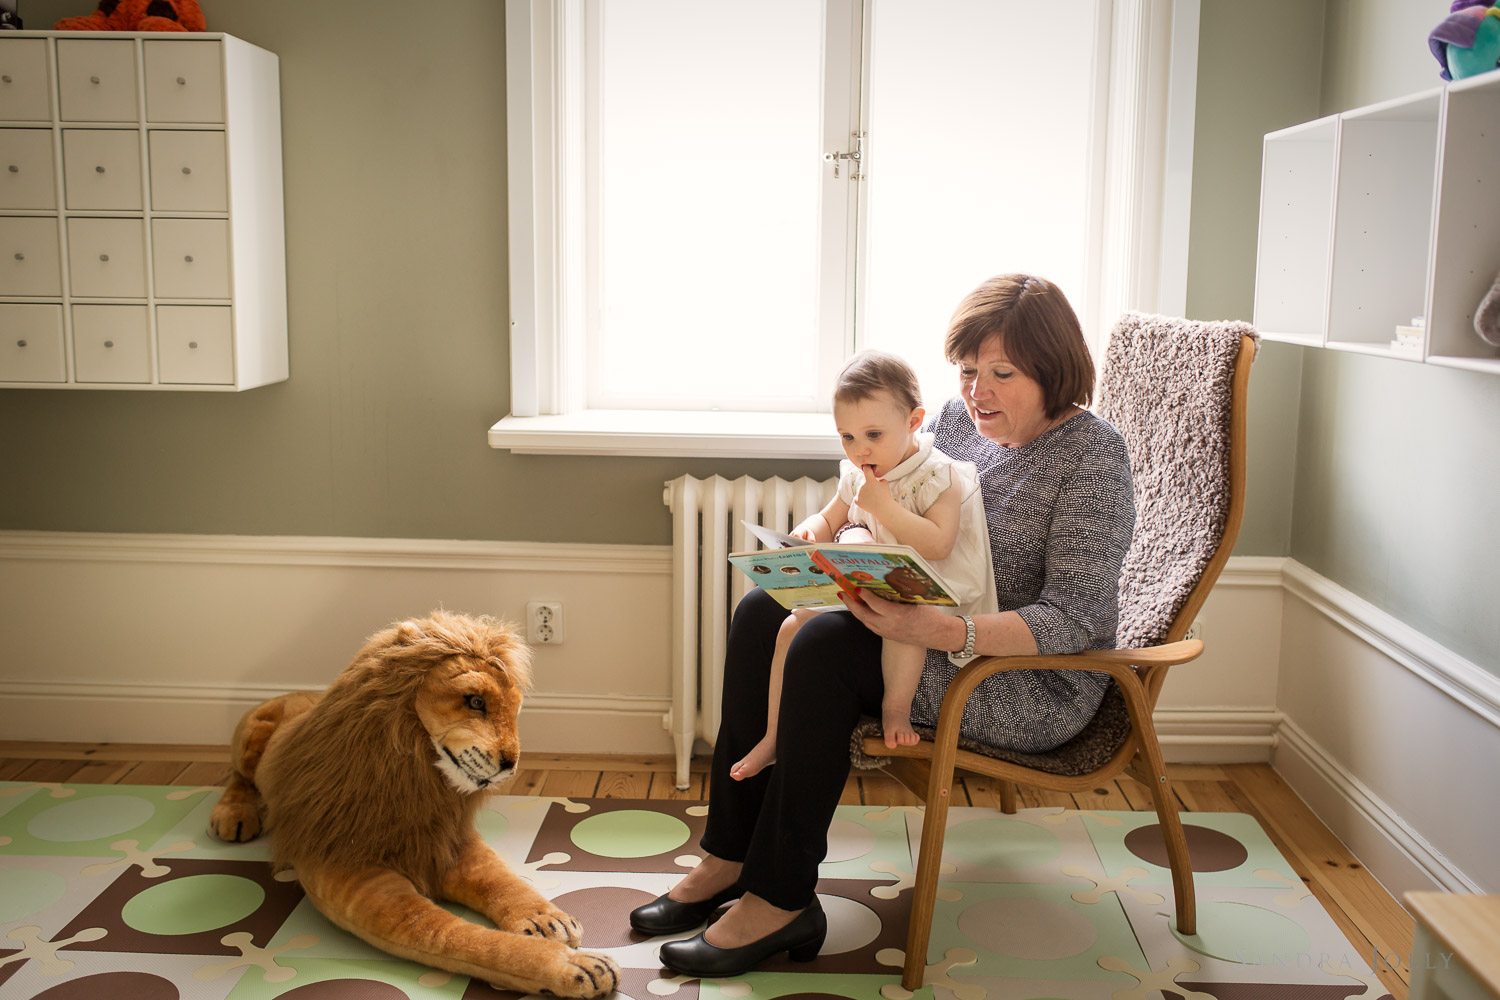 grandmother-reading-to-granddaughter-by-familjefotograf-sandra-jolly.jpg